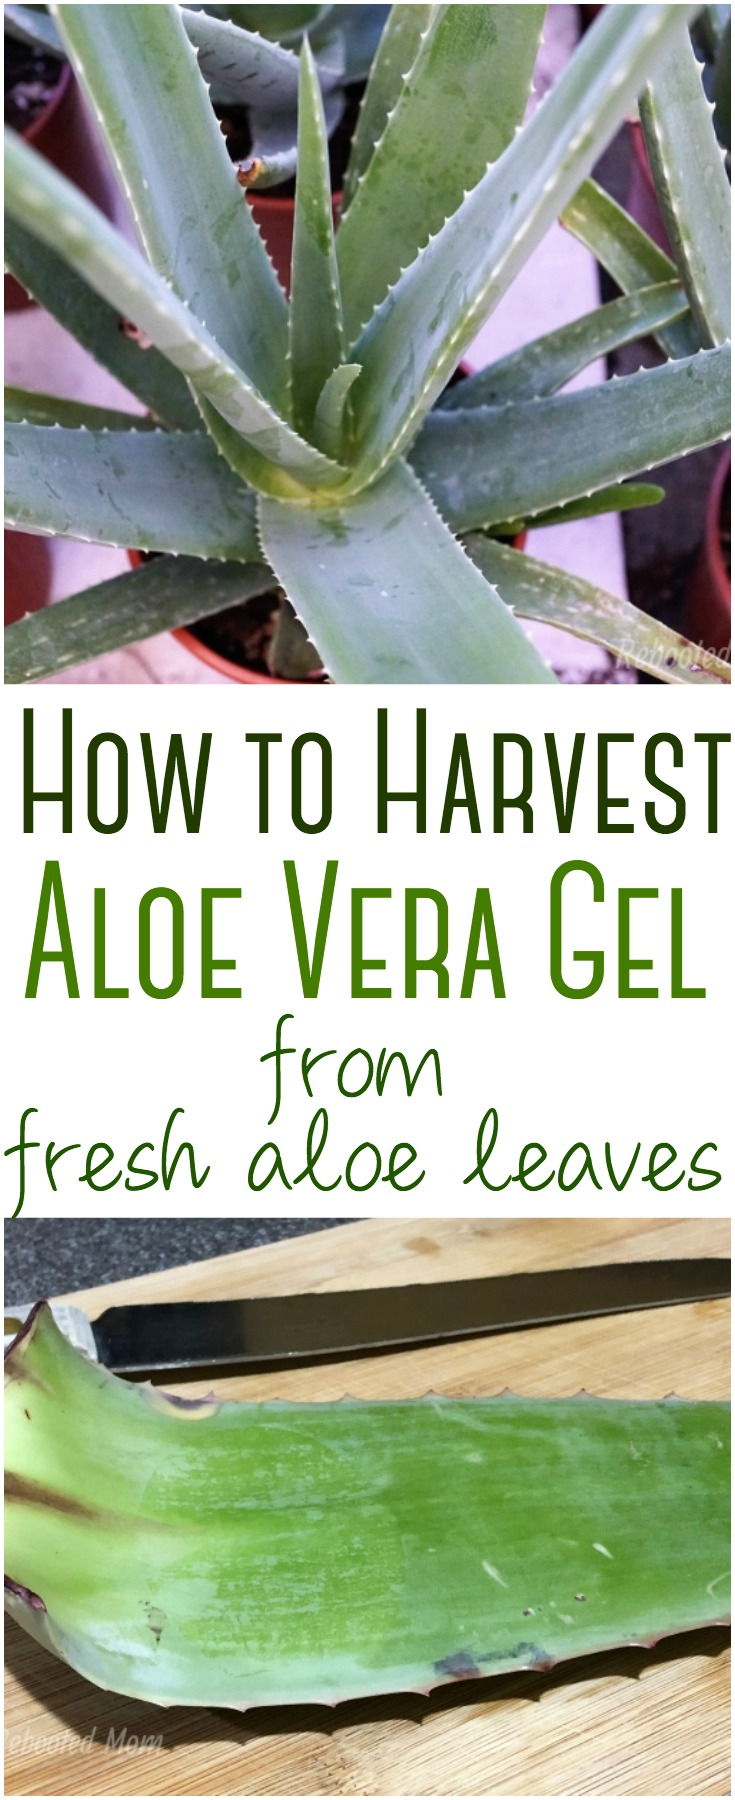 Make your own aloe vera gel from fresh leaves and use it in your beauty and skin care products. Aloe vera gel is natural and a powerhouse for skin care!